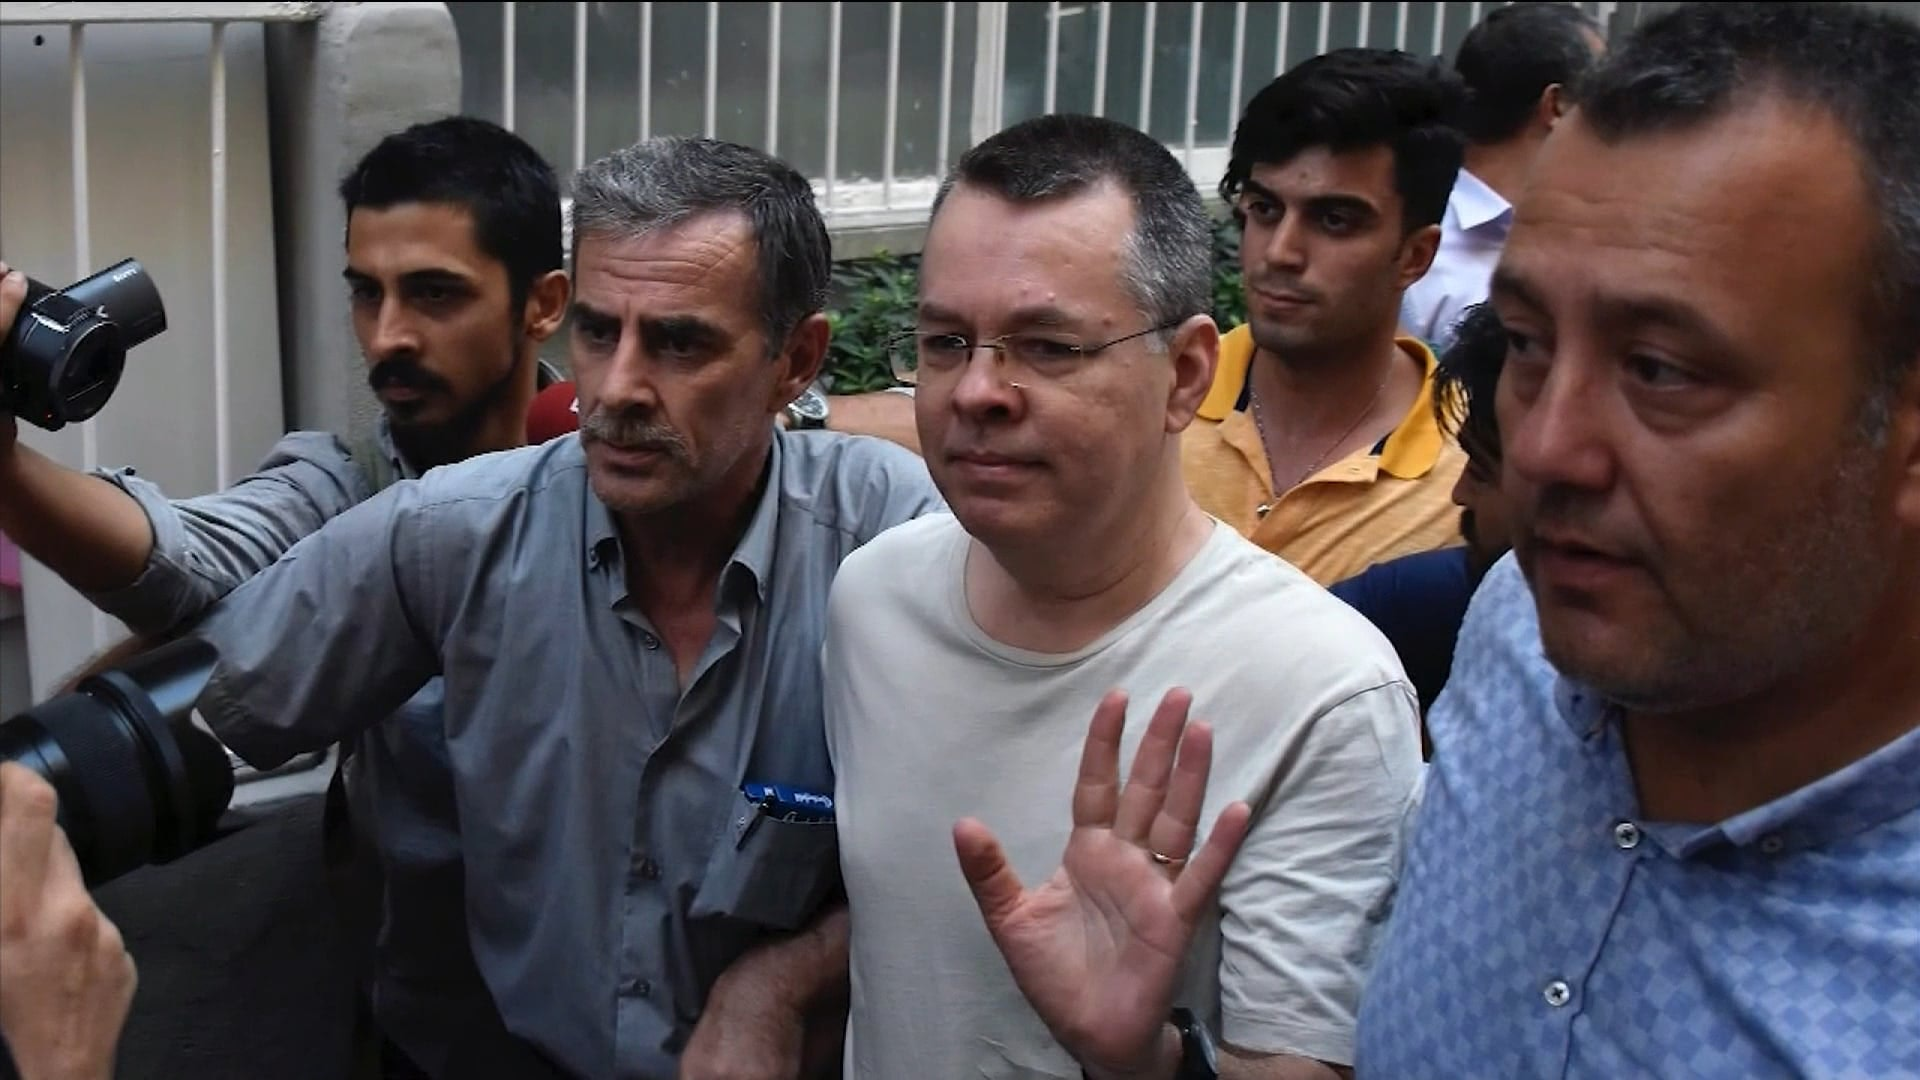 Watch Andrew Brunson | Two Years in a Turkish prison